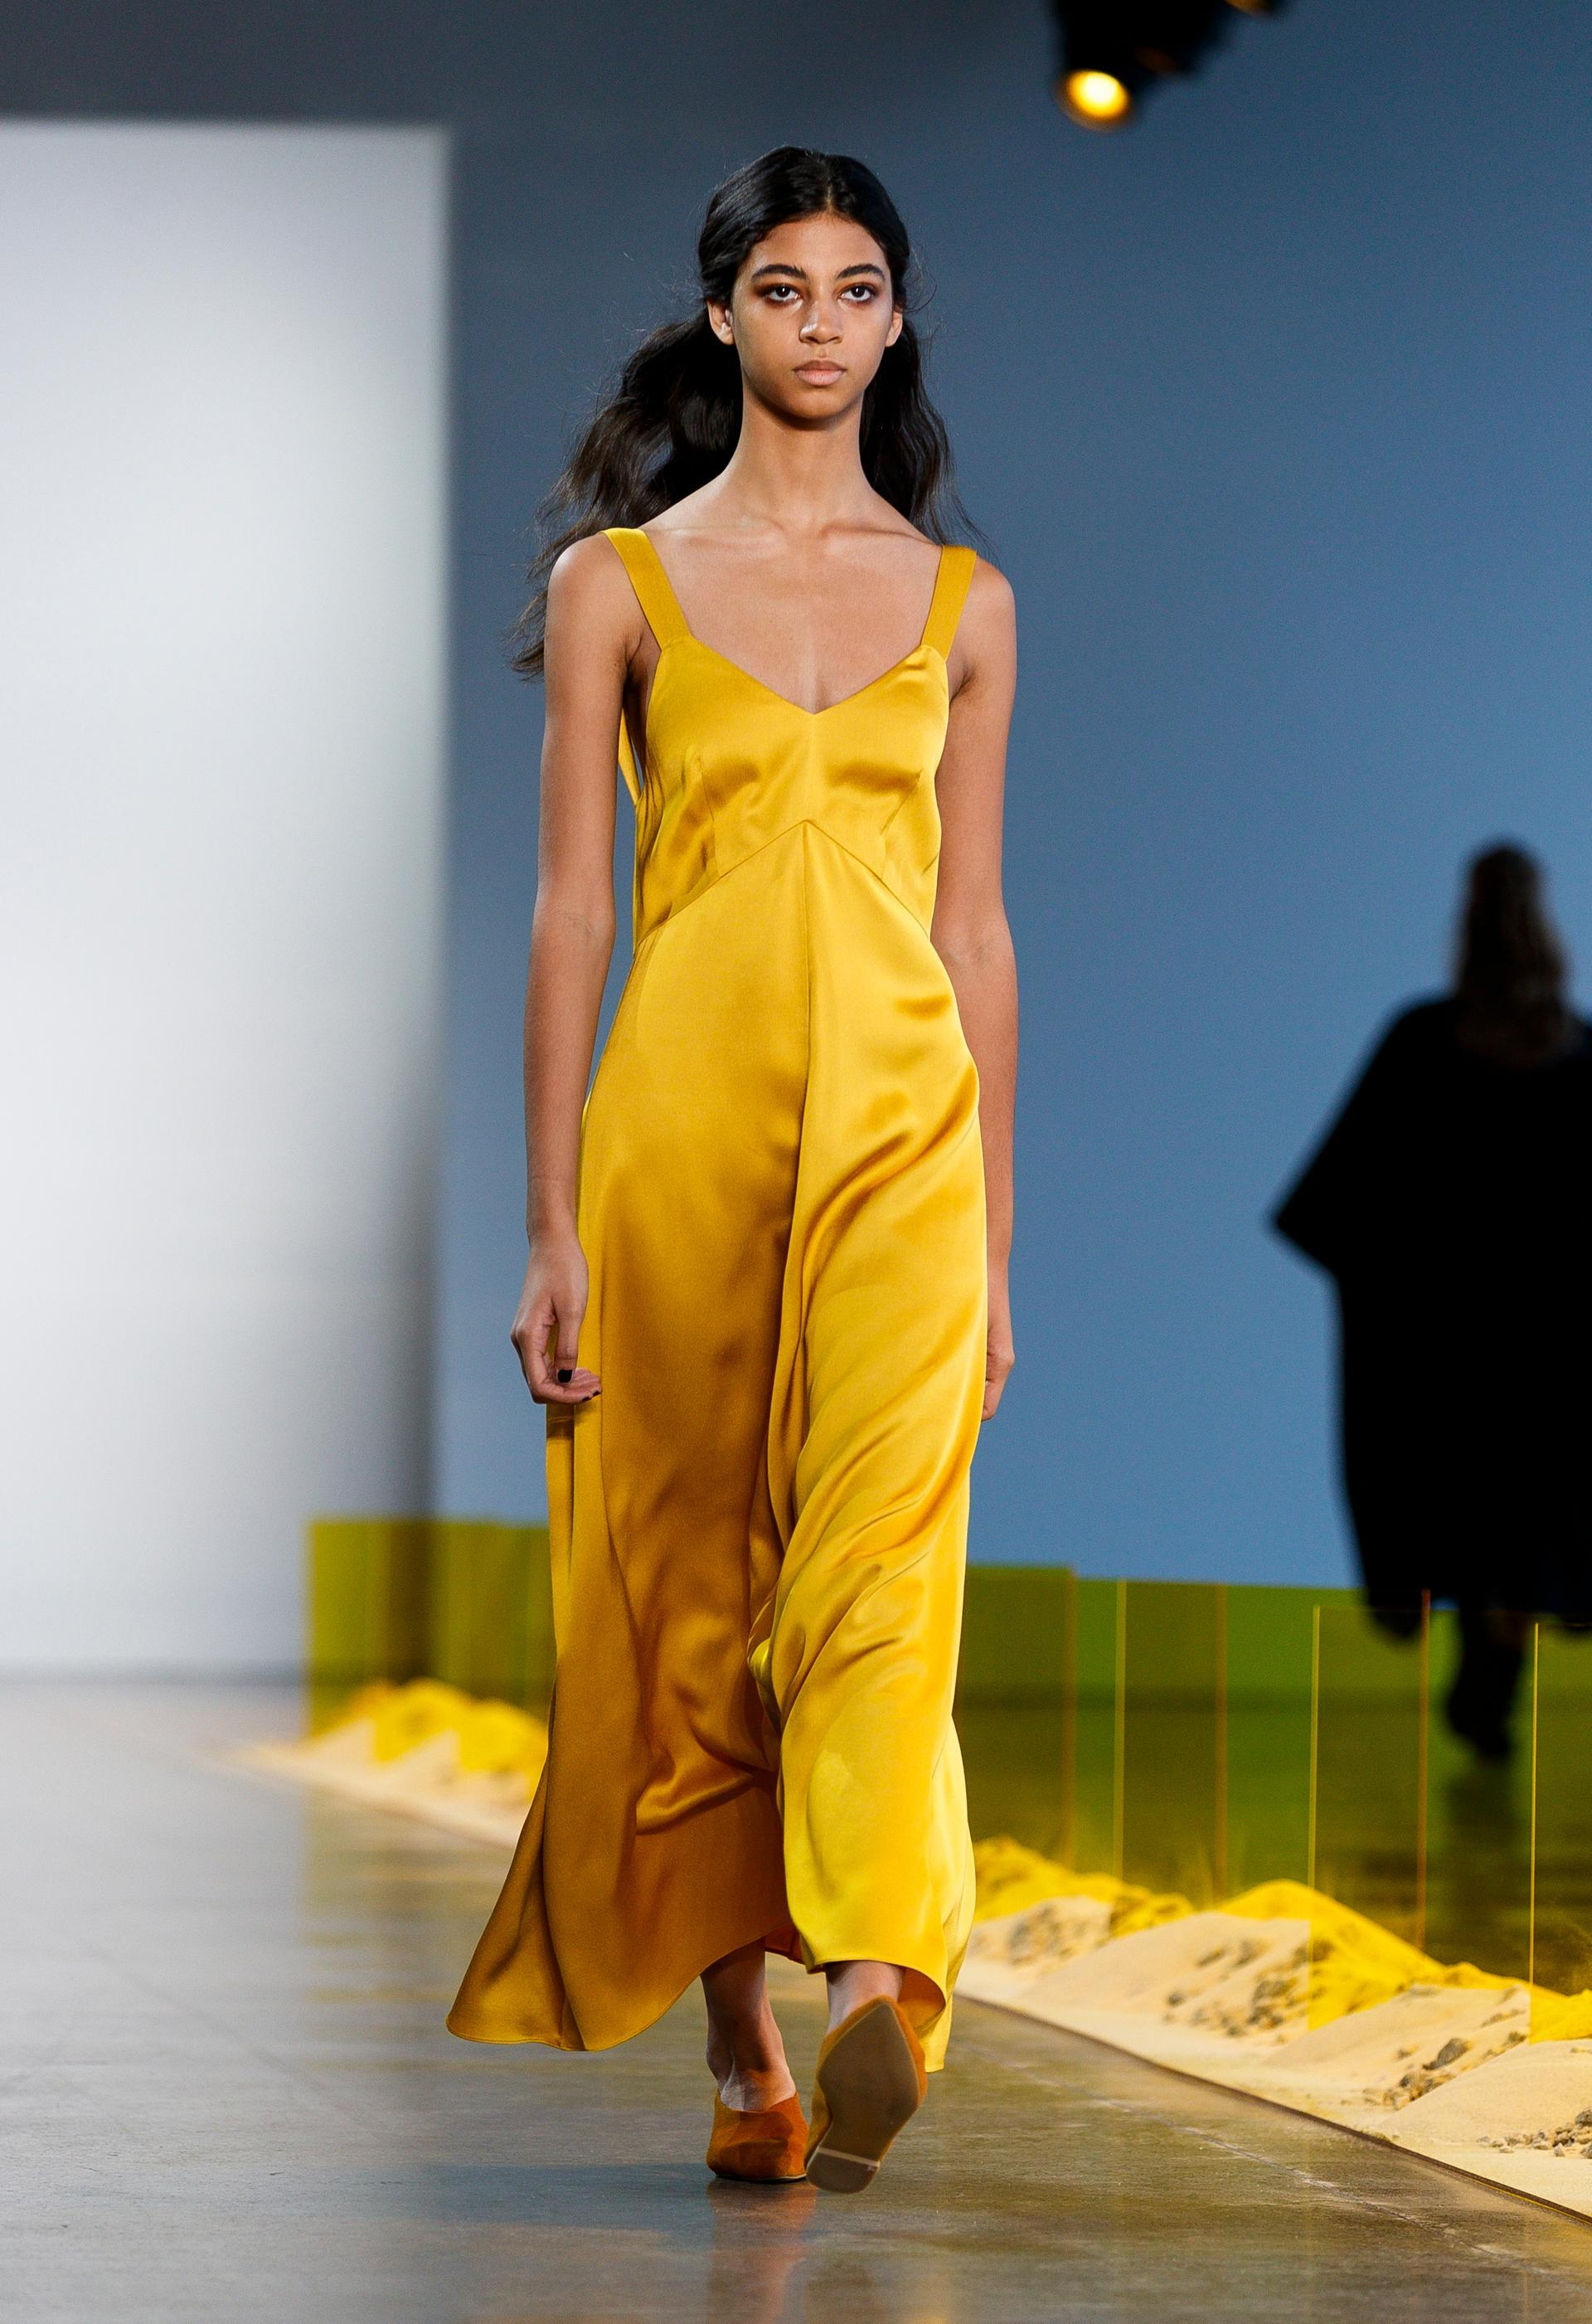 Noon by Noor featured flowy pieces with solid colors. This yellow maxi silk dress is one of my favorite looks from the collection. Photo credit: The National.